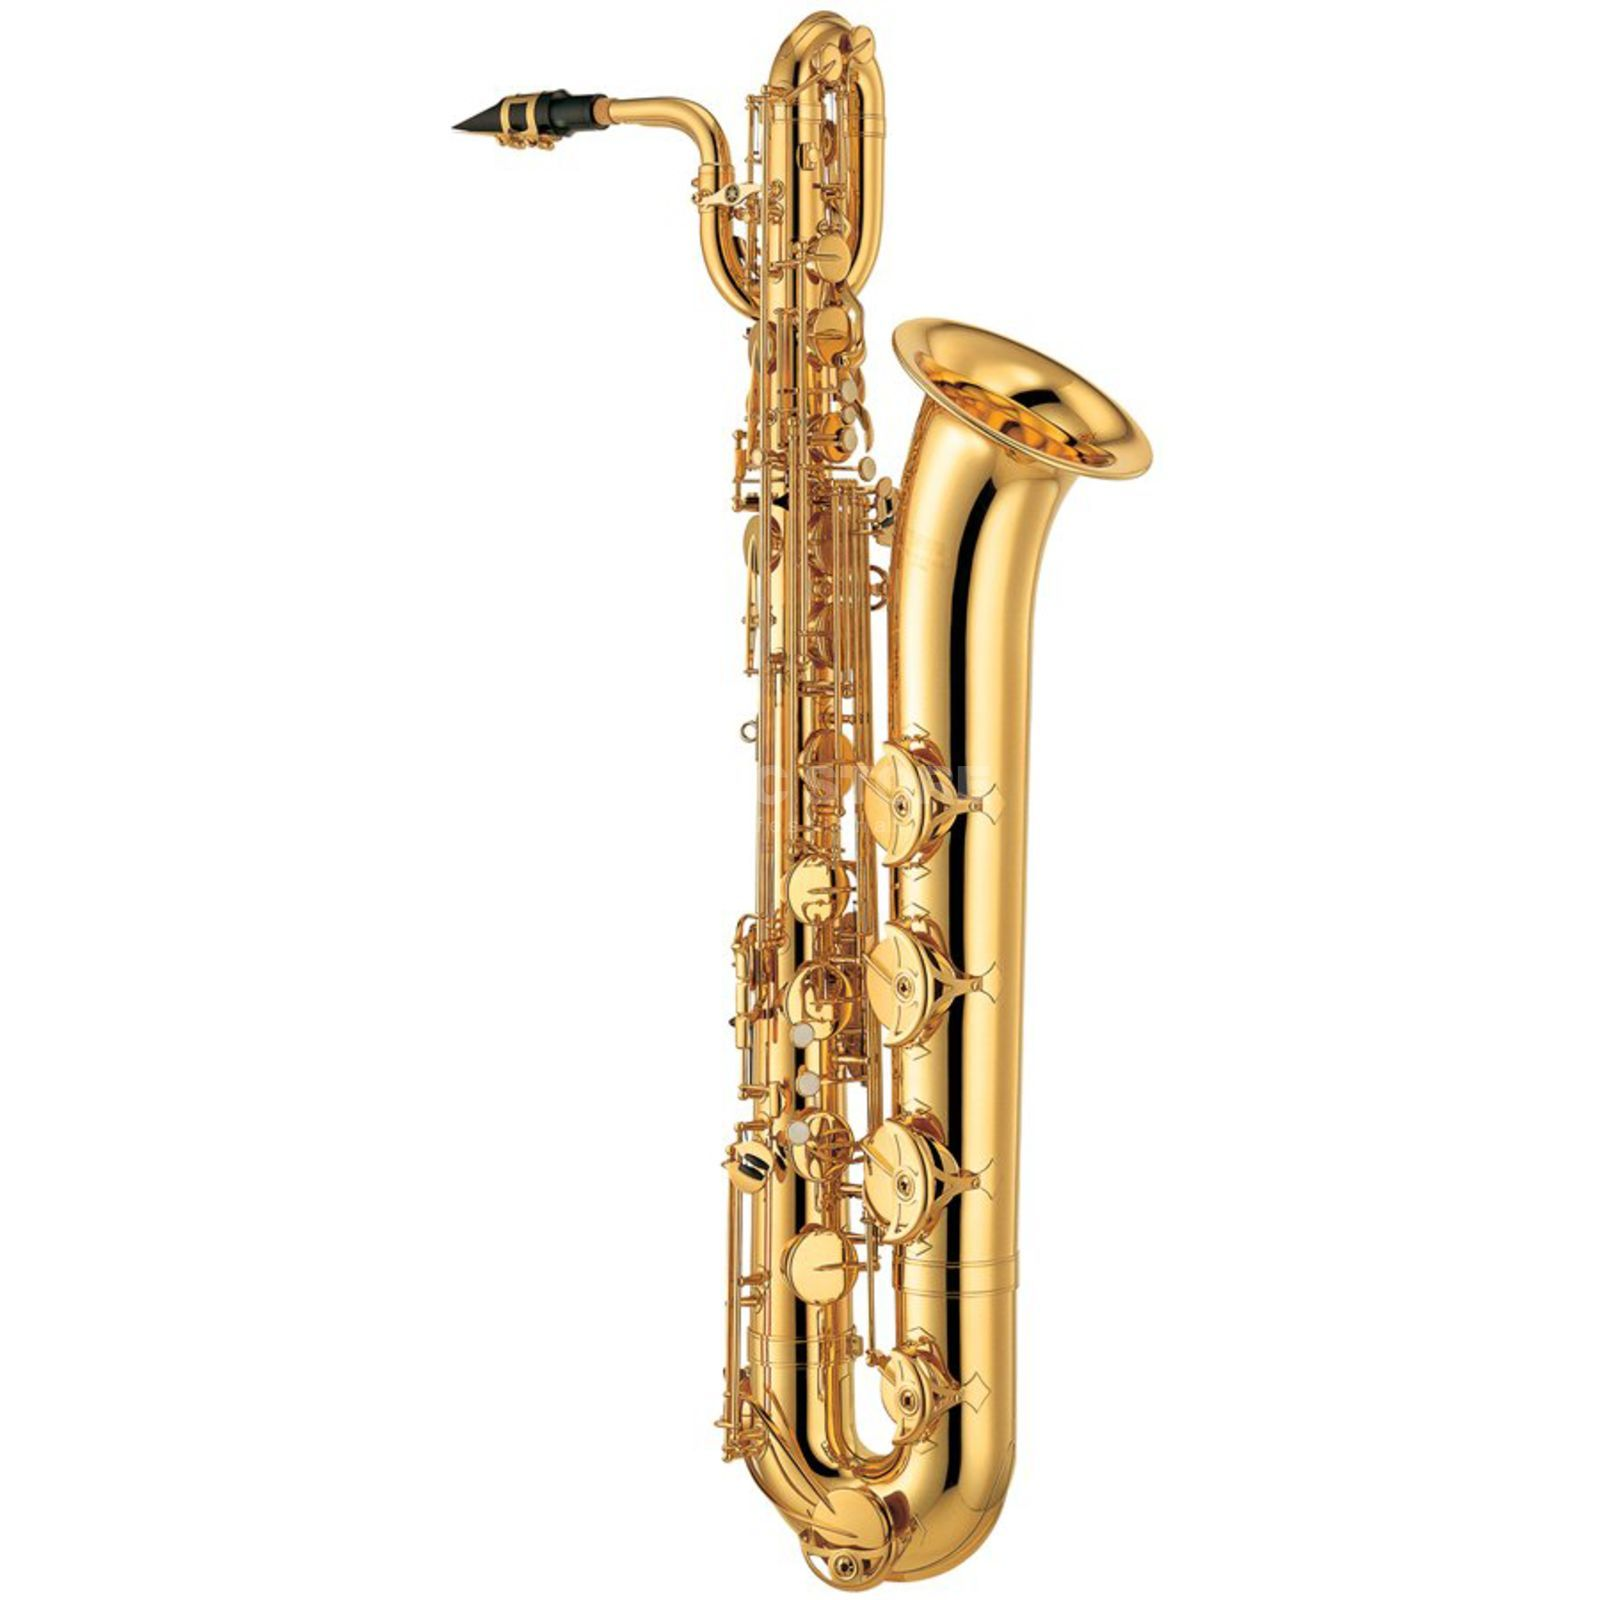 Yamaha YBS-32E Eb-Baritone Saxophone Incl. Case and Accessories Immagine prodotto